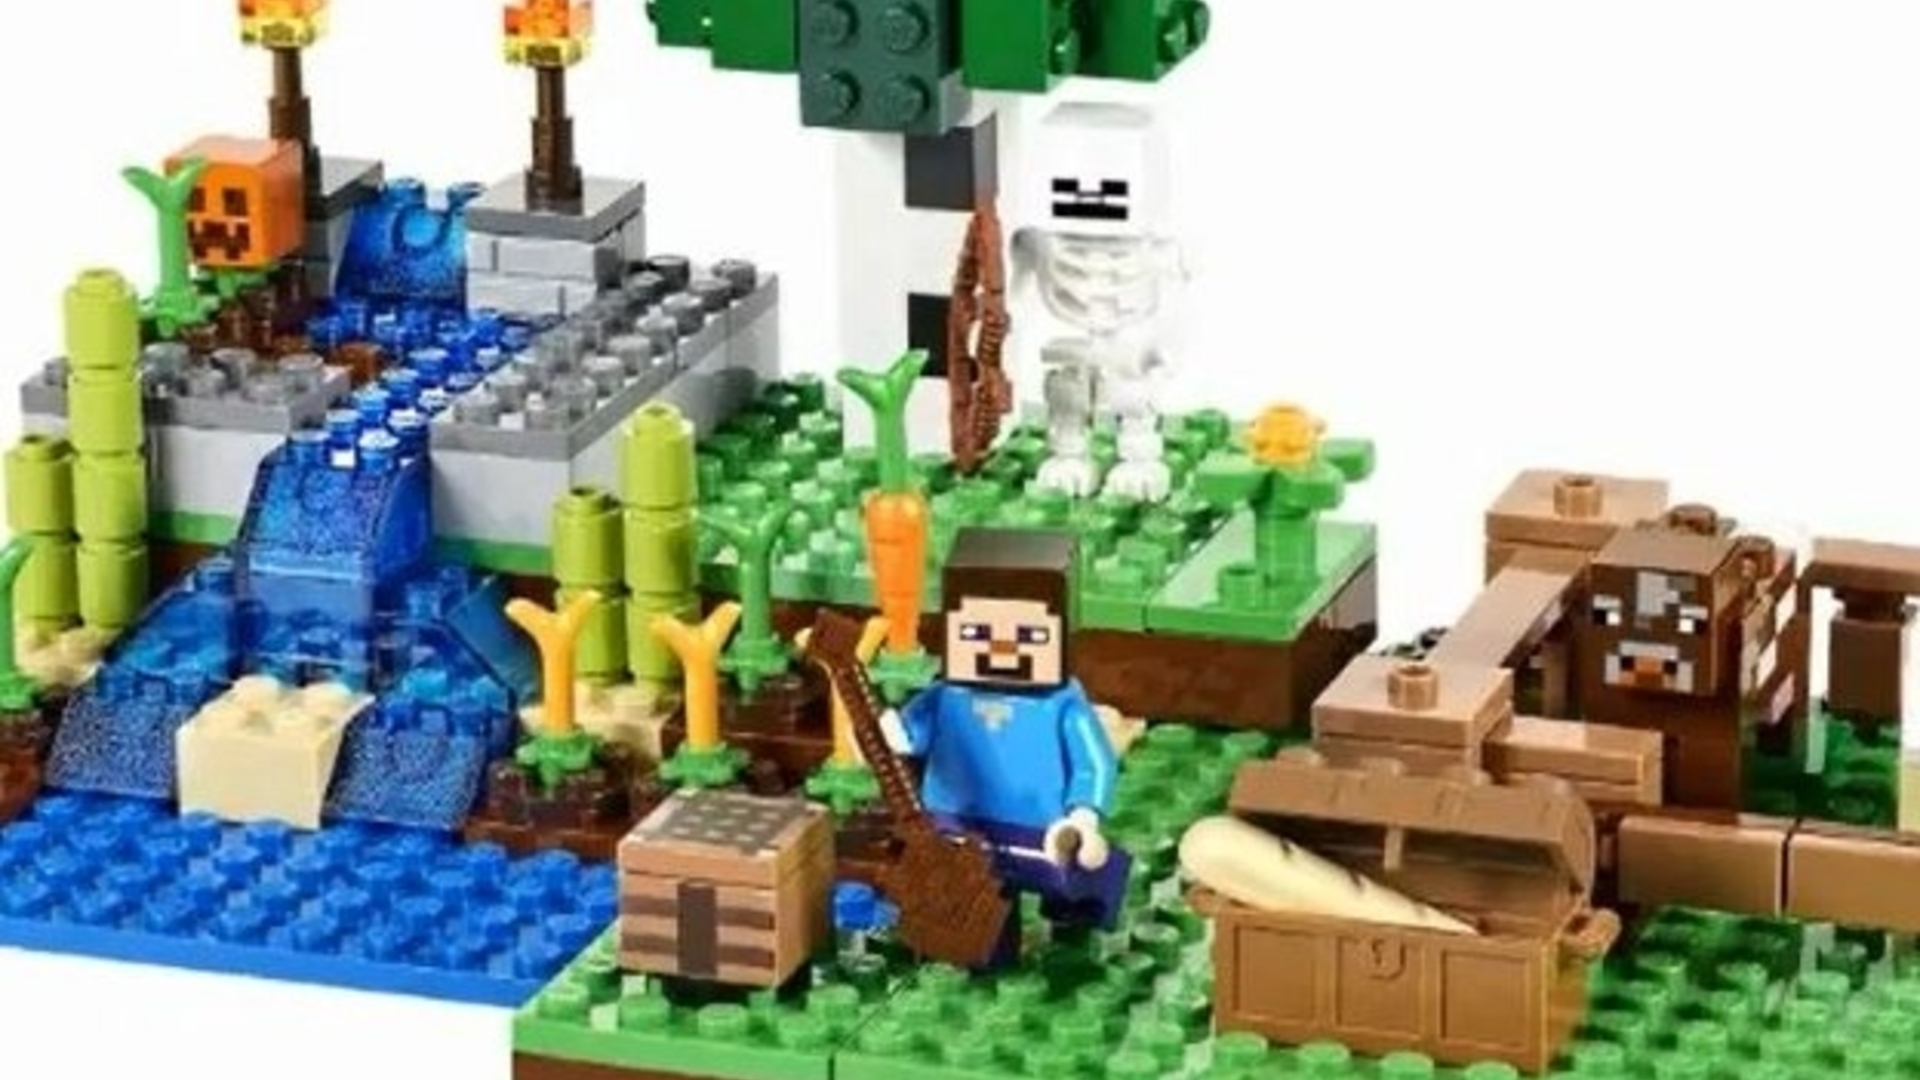 New full-size Lego Minecraft range revealed